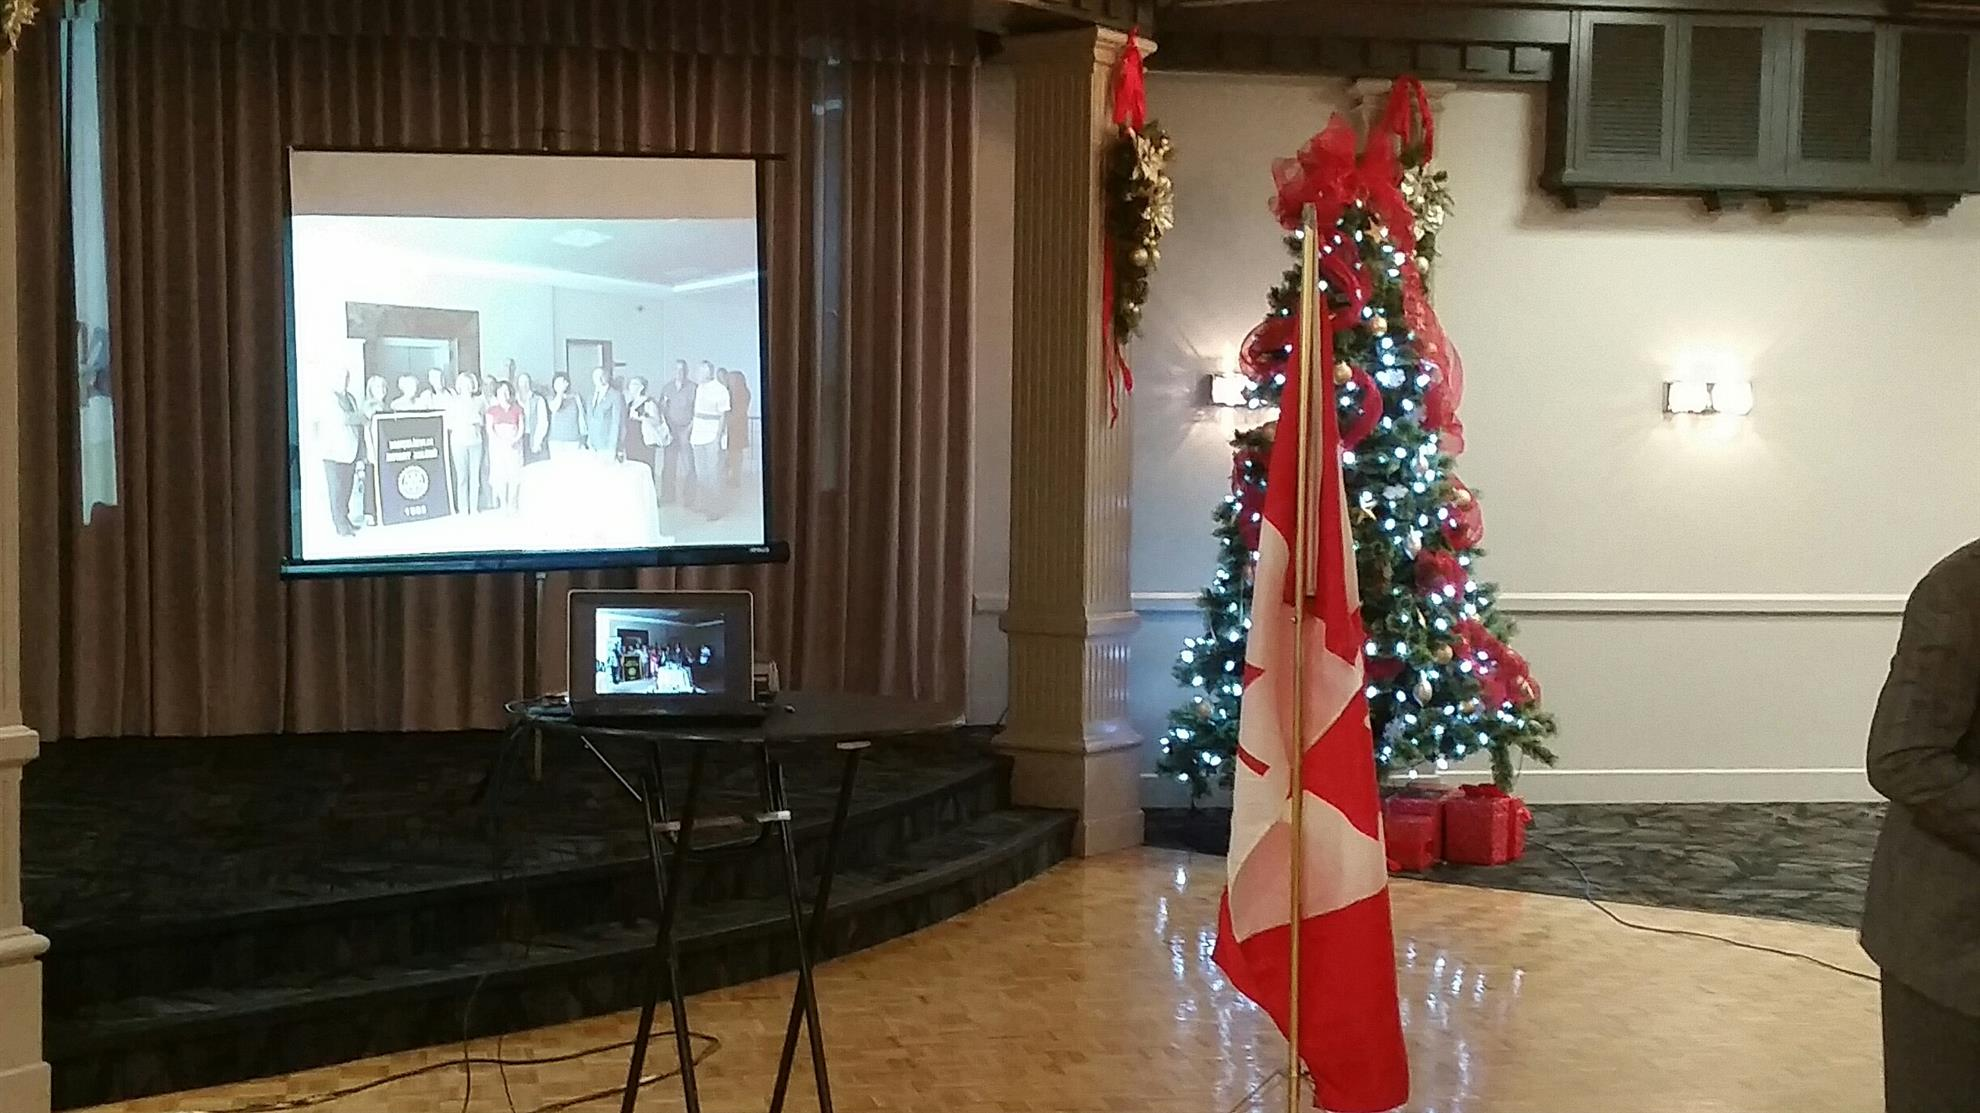 the tiller november 28 2016 nov 30 2016 a slide show of rotary club of calgary north past history of events and members was on display through out the meeting